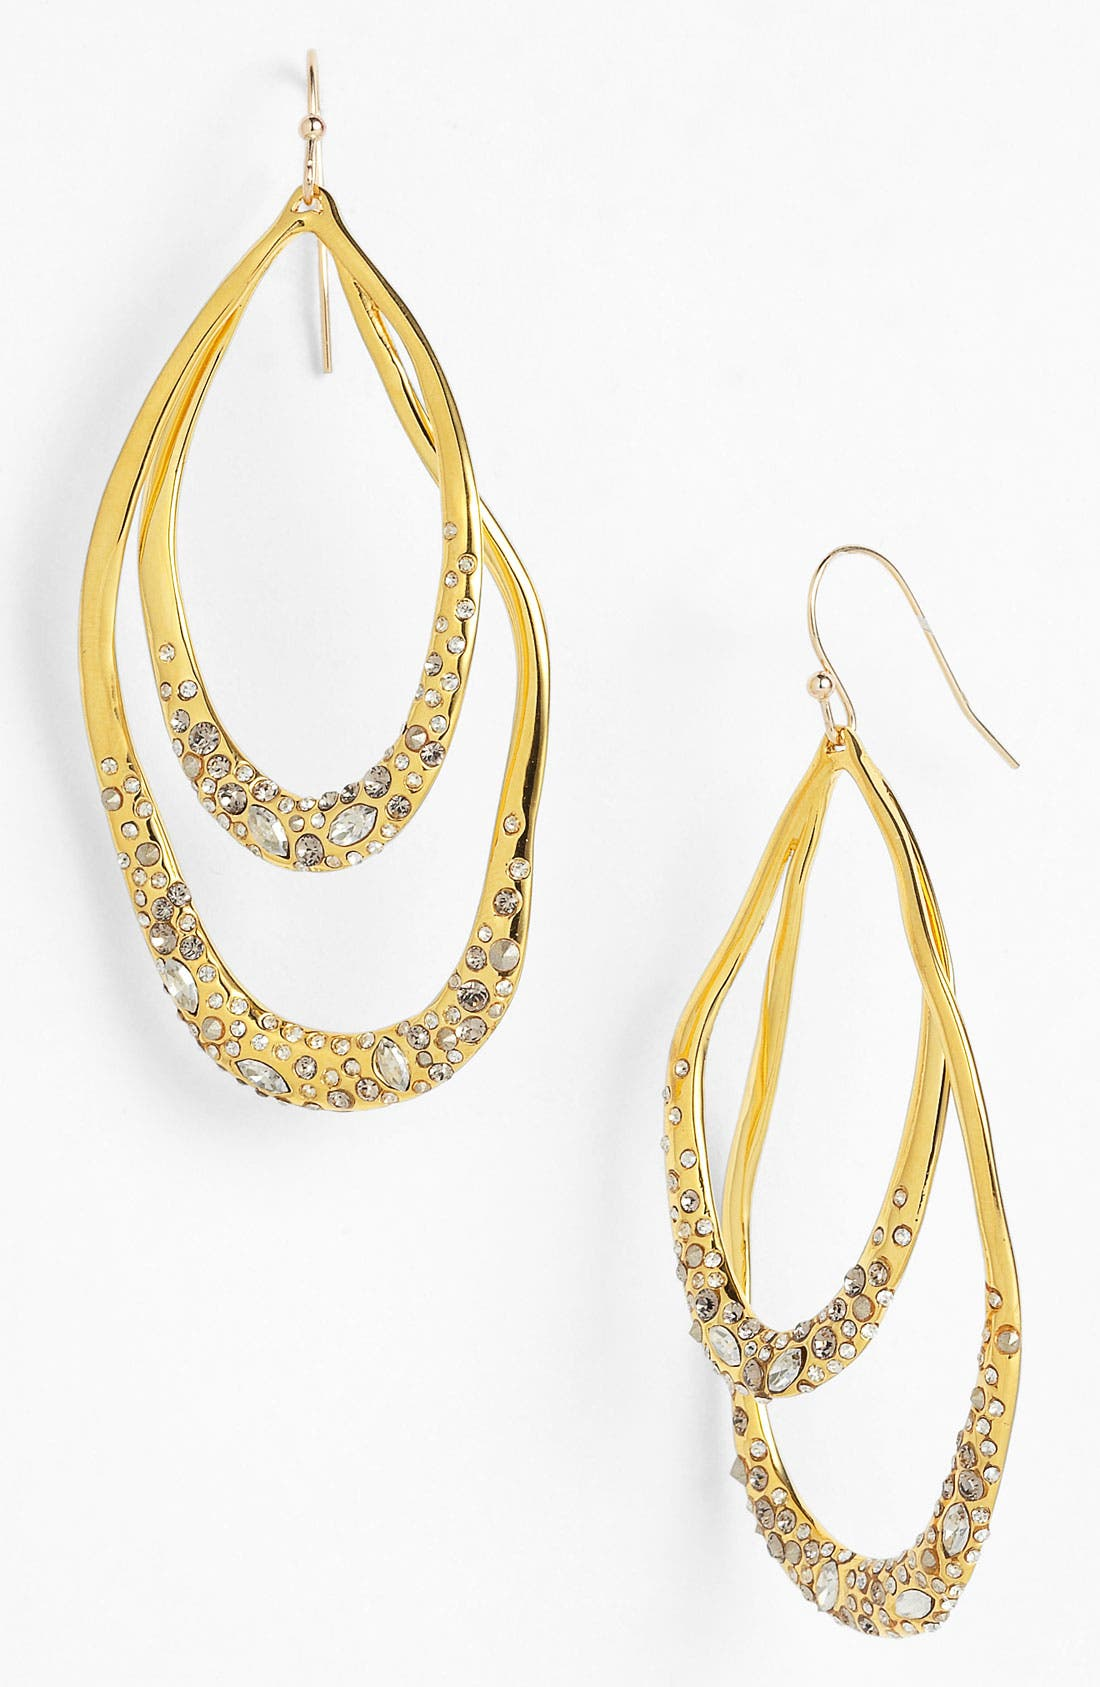 Alternate Image 1 Selected - Alexis Bittar 'Miss Havisham - Orbiting' Teardrop Earrings